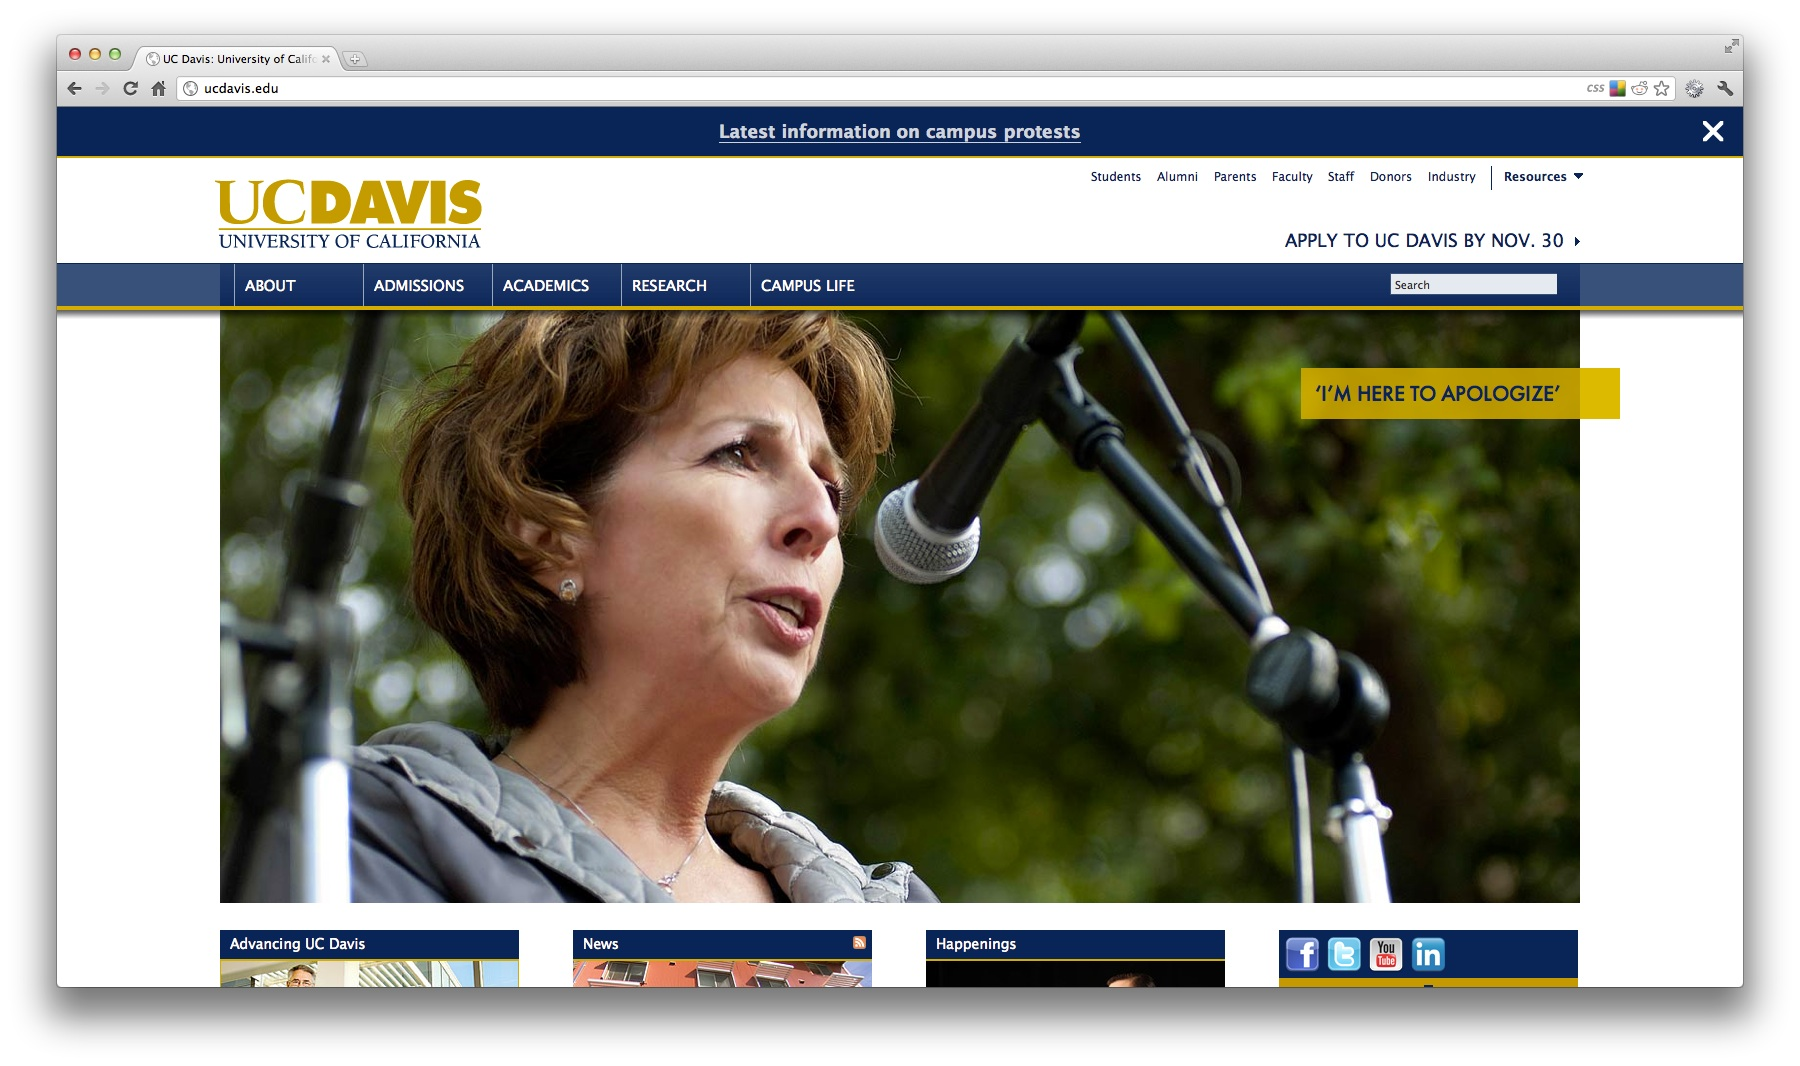 Screenshot of the UC Davis homepage featuring Chancellor Katehi